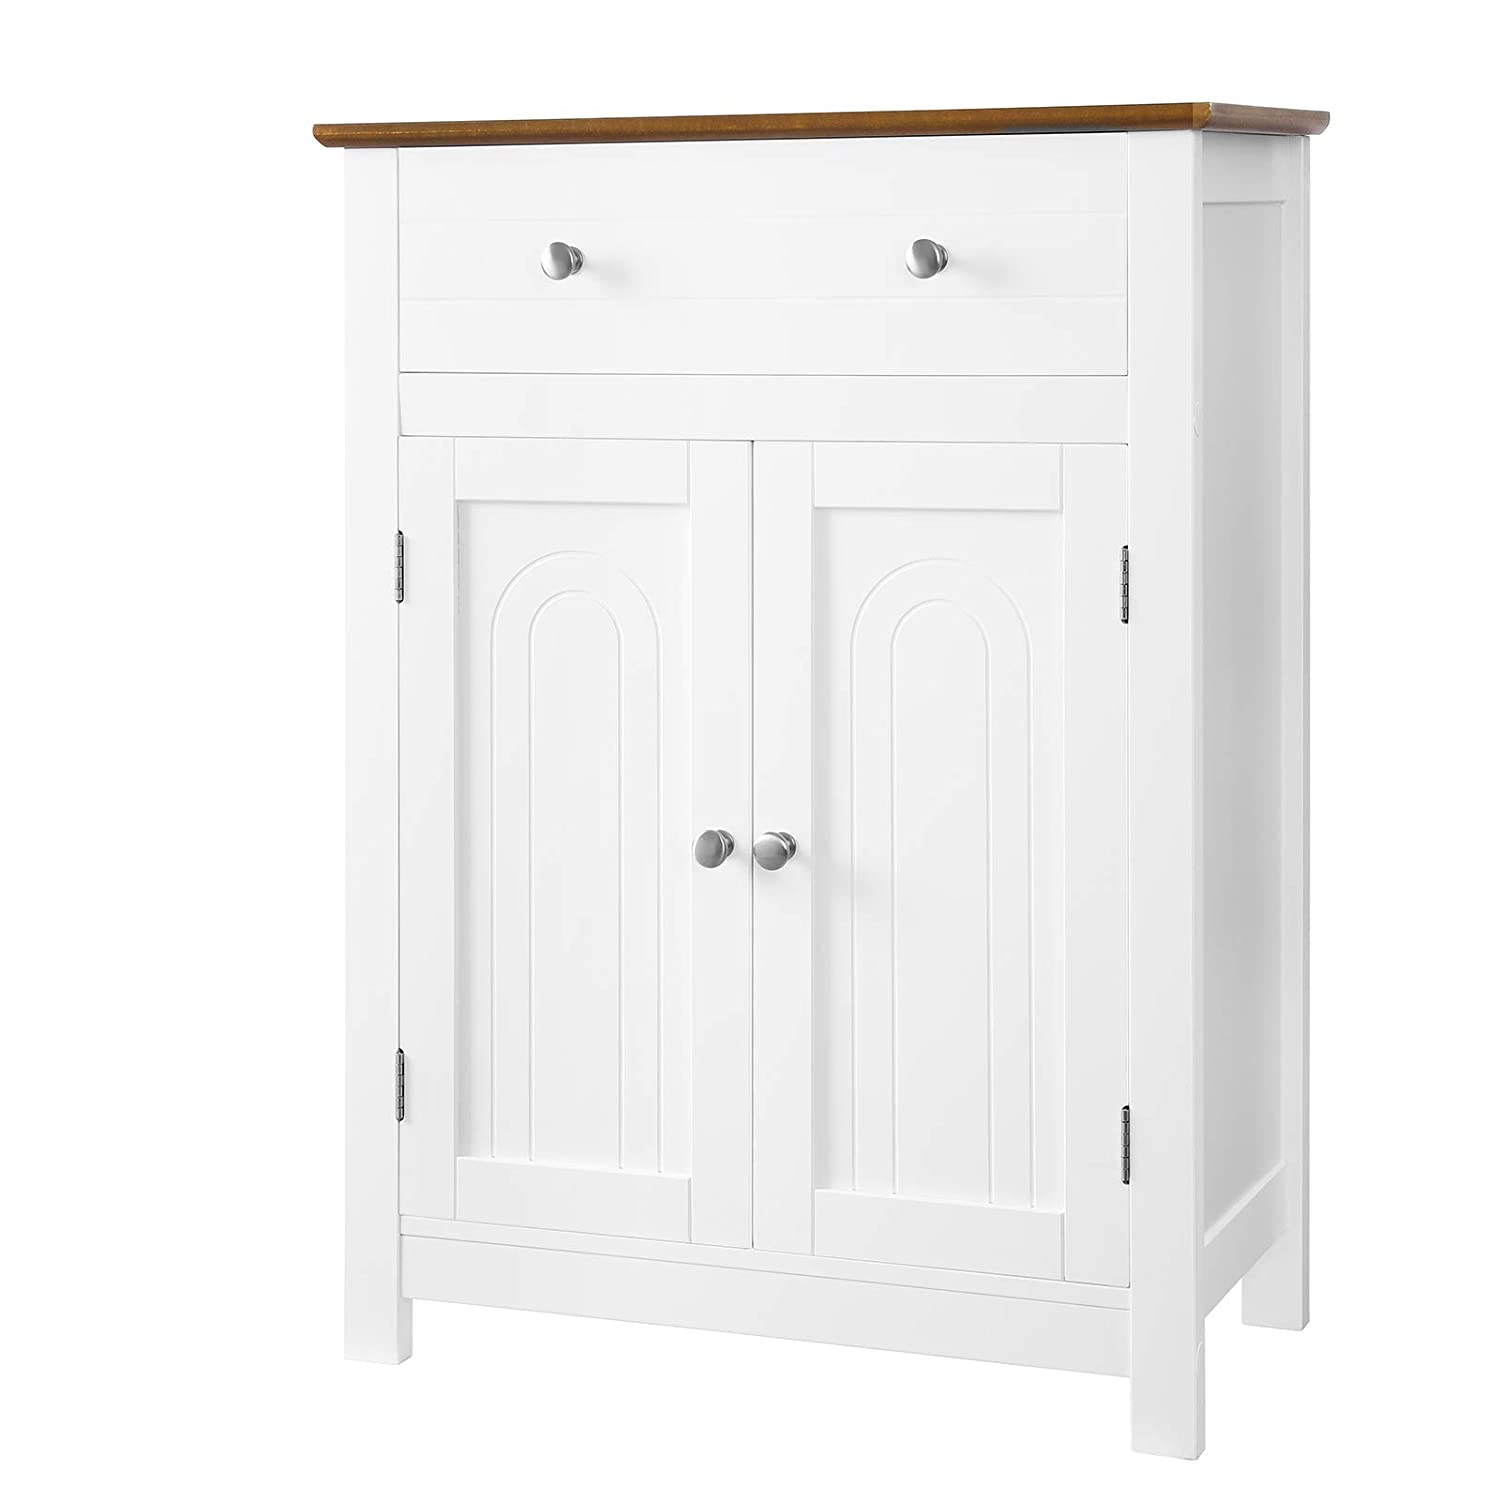 SONGMICS Free Standing Bathroom Storage Cabinet with Drawer and Adjustable Shelf, Kitchen Cupboard, Wooden Entryway Floor Cabinet, 23.6